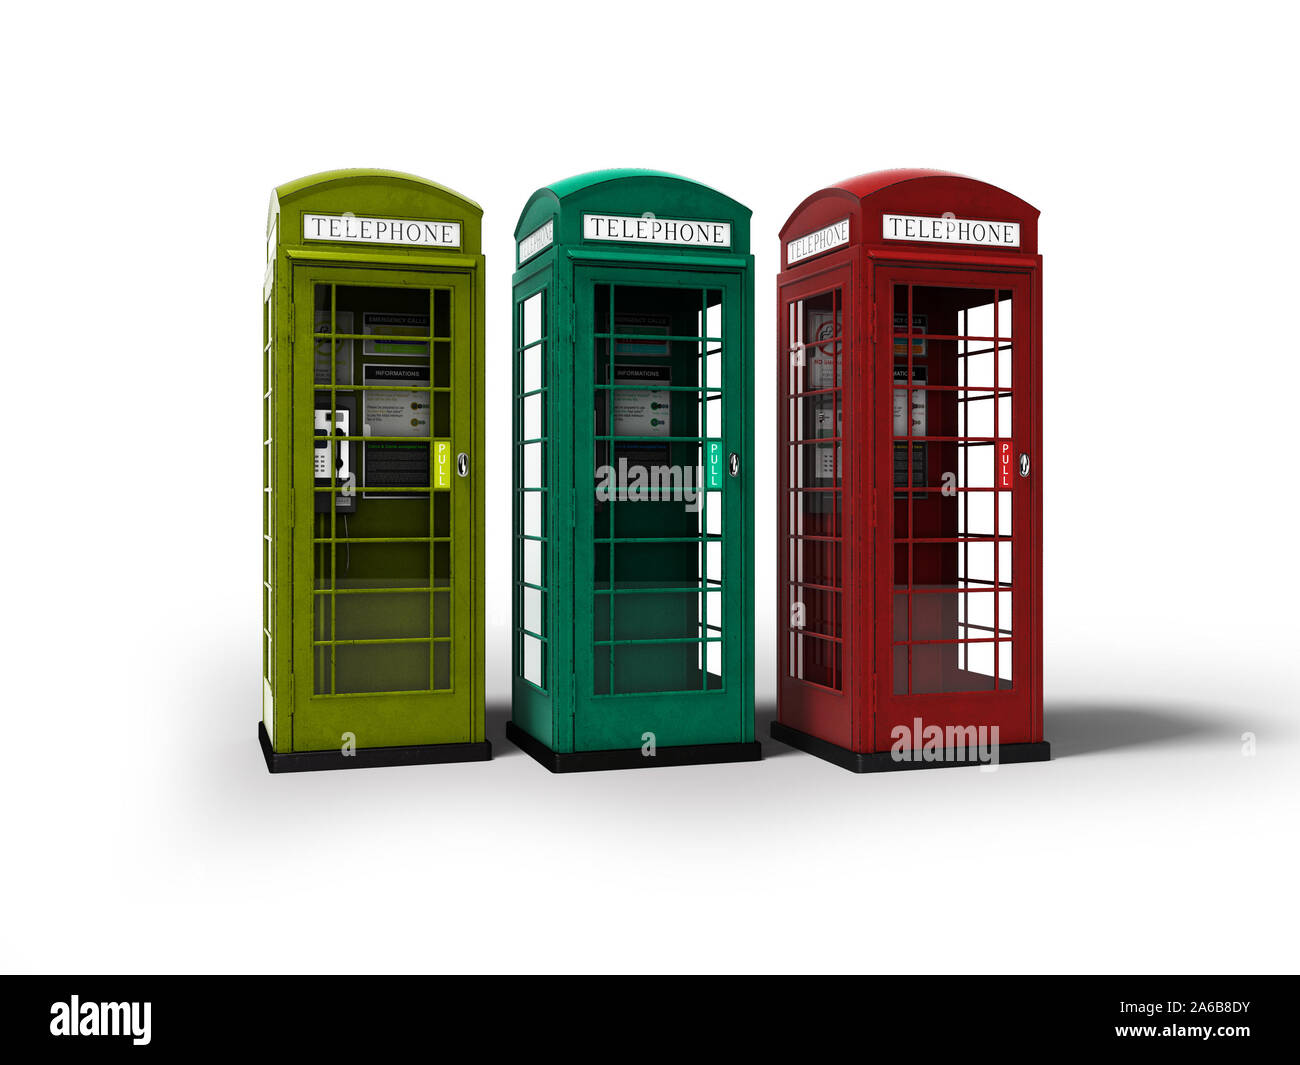 Telephone booth red green yellow 3d render on white background with shadow Stock Photo